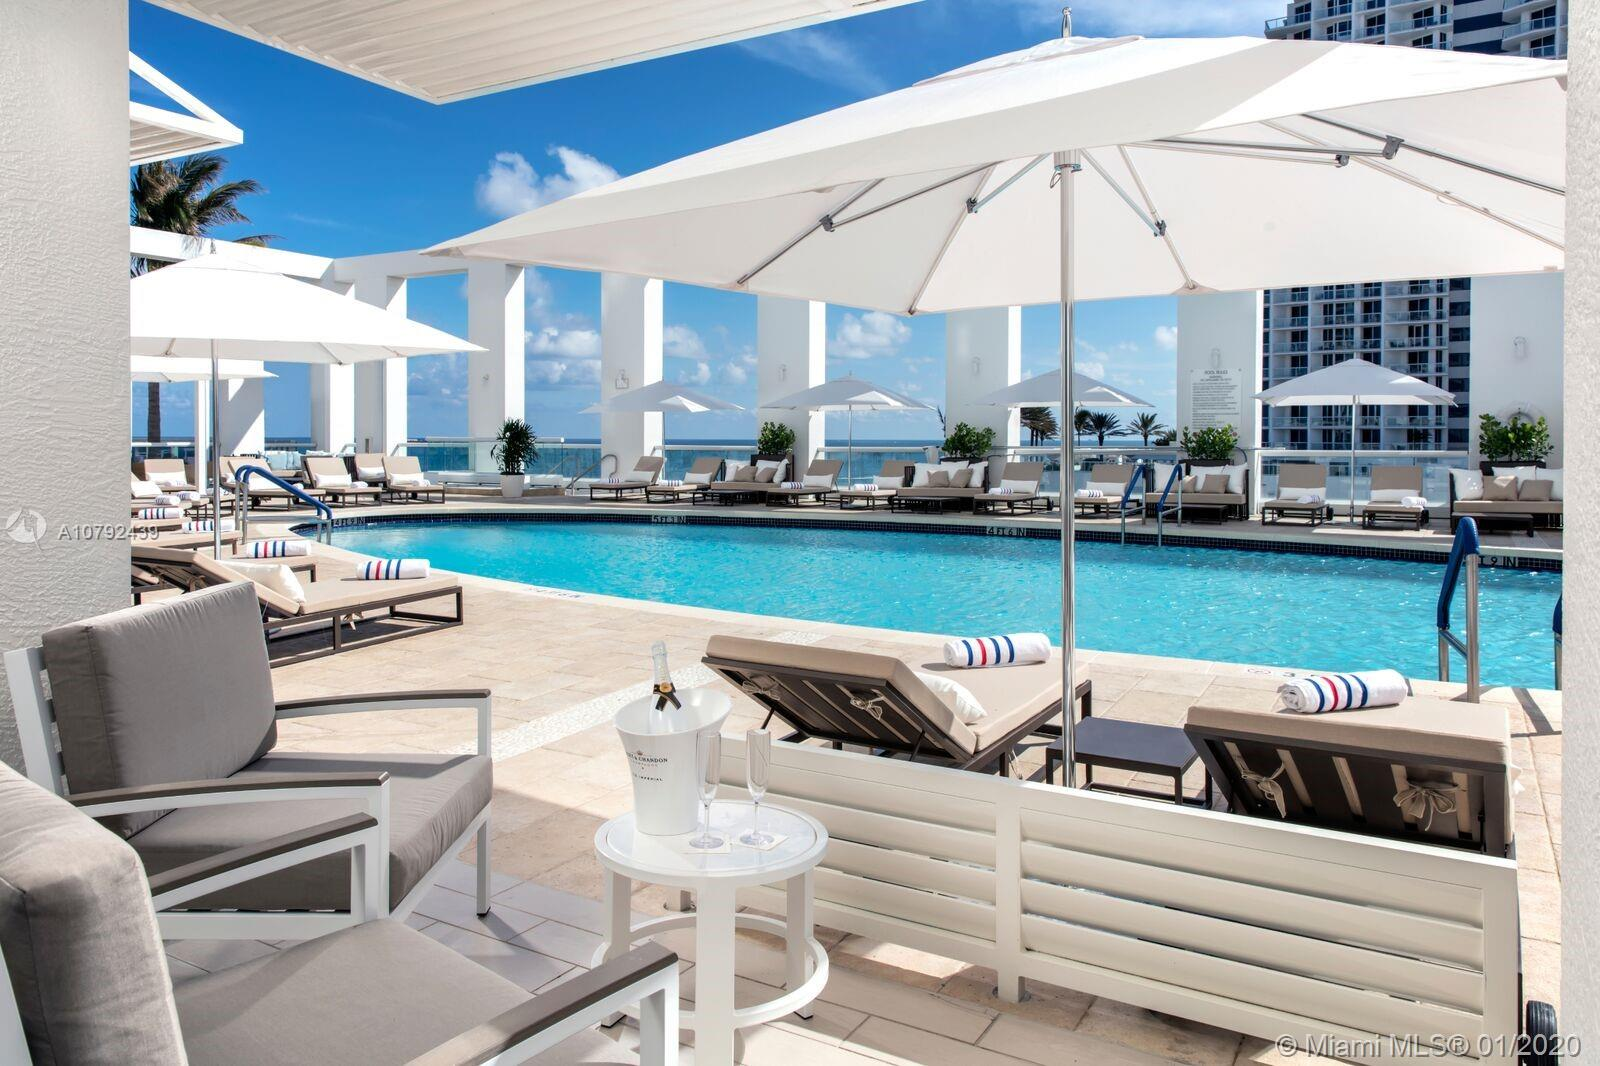 Luxurious Resort Residences, presented as hotel/condos, professionally designed & fully furnished by Steven G. This unit features ocean and intracoastal views, marble bathrooms with double sinks, marble tub & separate walk in shower. Kitchen has a Wolf range and Subzero appliances. Luxury resort amenities, including twice per day housekeeping, laundry service, beach service, pool service, gym, house car service, Conrad spa, 24 hr valet parking and more. Hilton Gold Membership. New Construction, now open, close immediately.